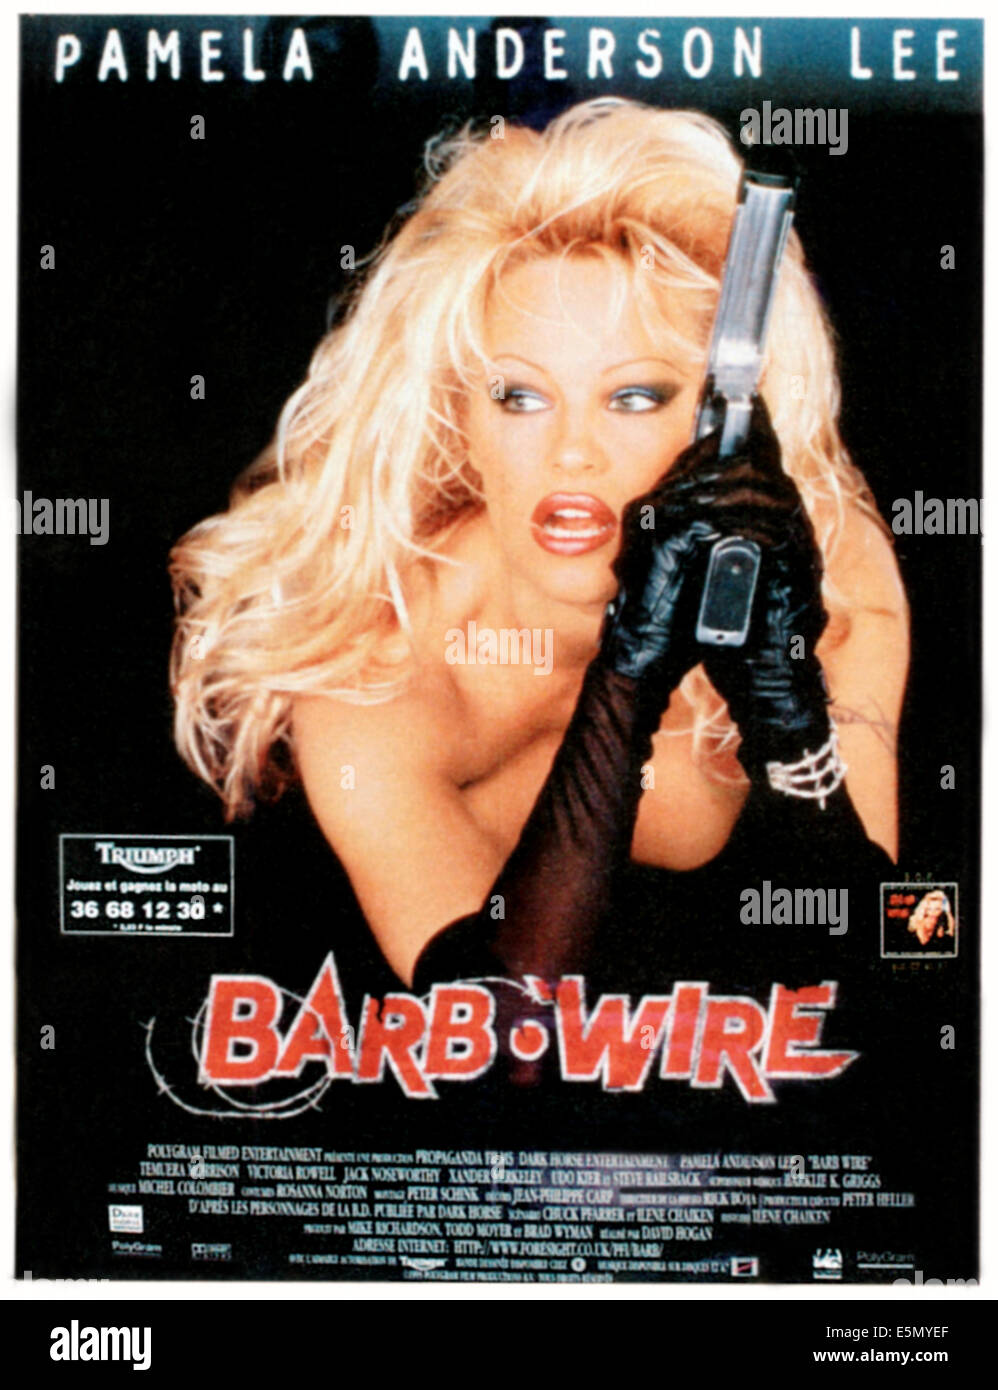 over the wire 1996 movie